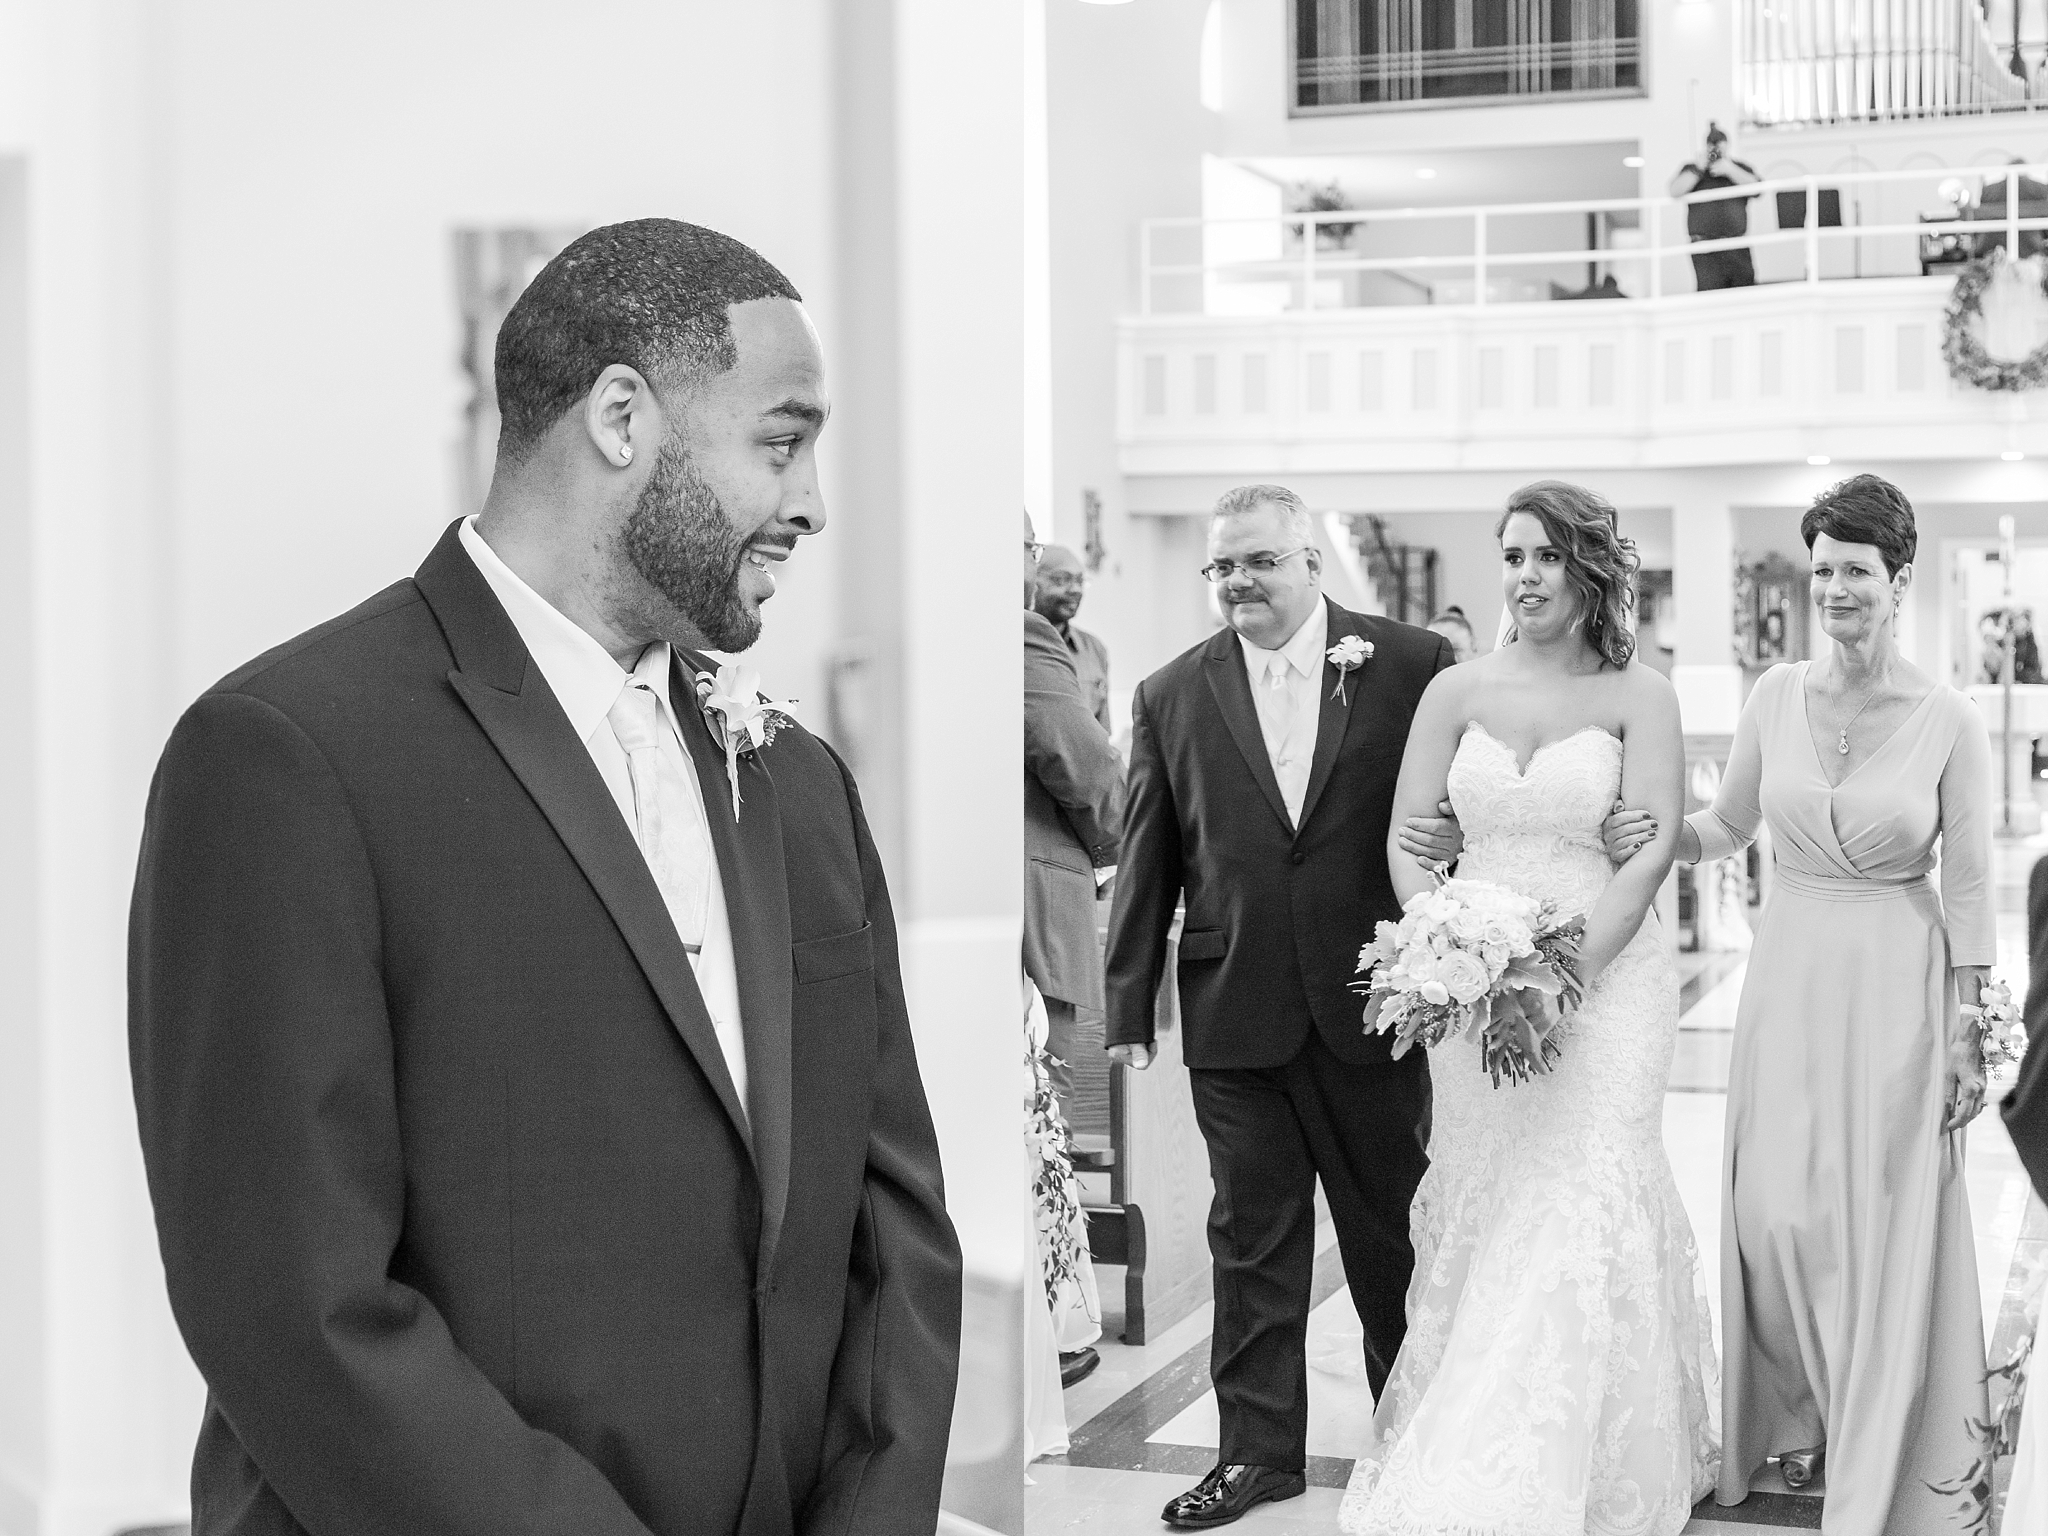 romantic-artful-candid-wedding-photos-in-detroit-lansing-ann-arbor-northern-michigan-and-chicago-by-courtney-carolyn-photography_0026.jpg